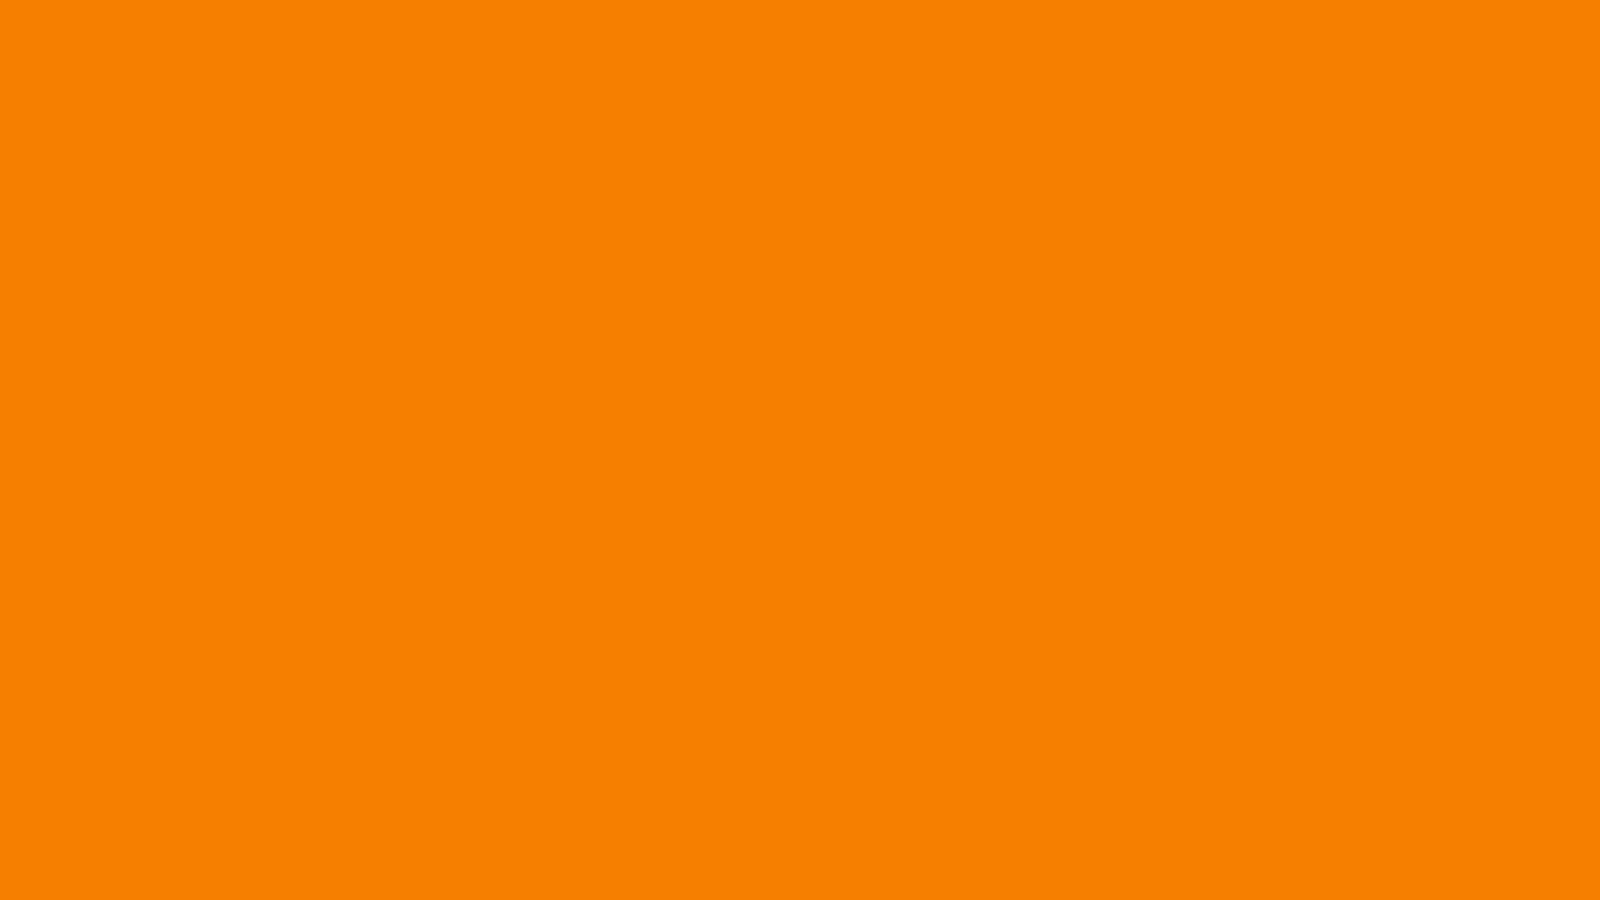 1600x900 University Of Tennessee Orange Solid Color Background